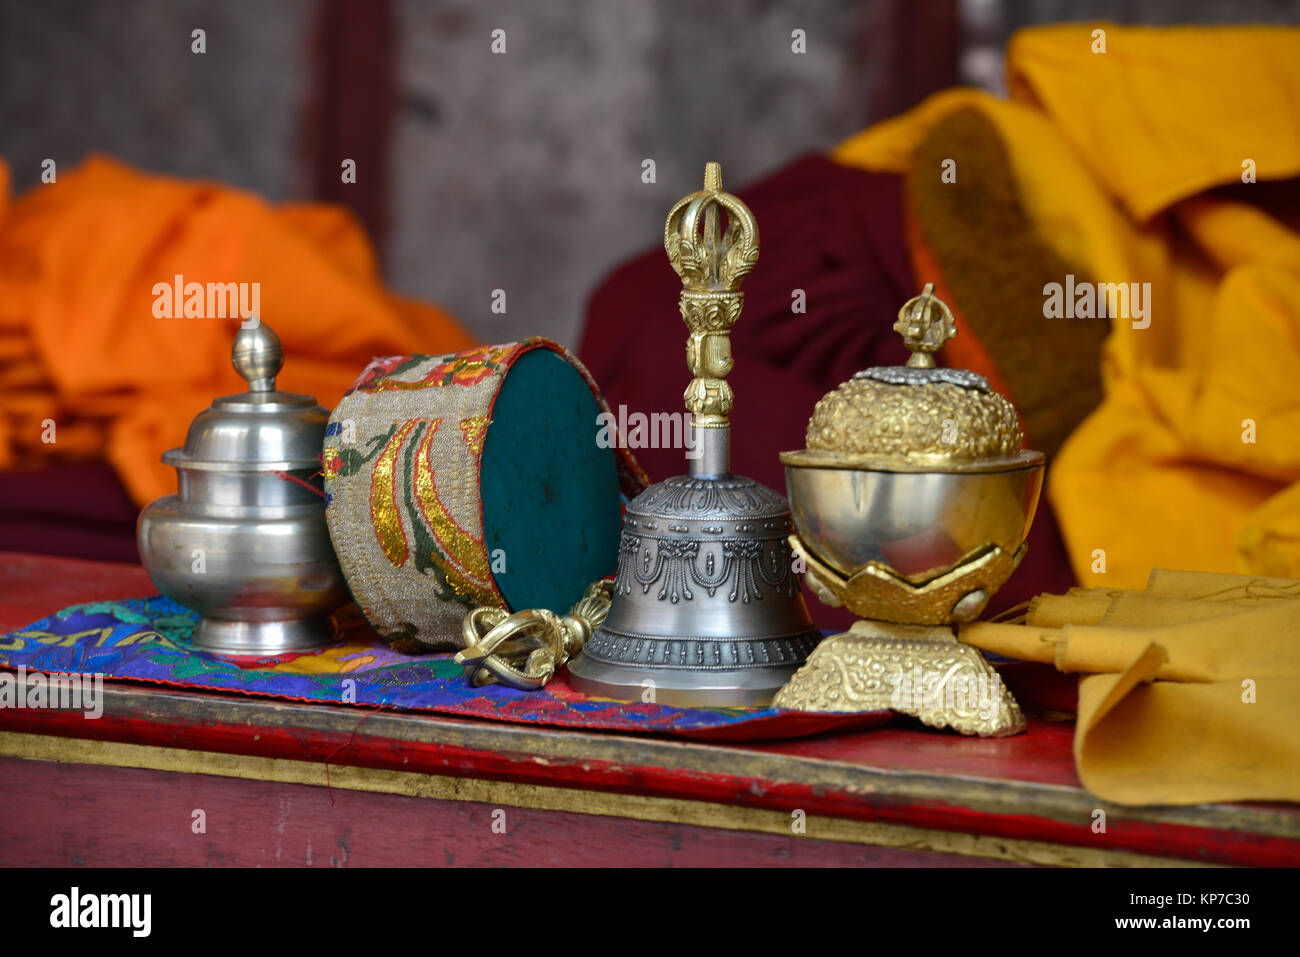 Ritual Buddhist Objects For Puja: A Tibetan Bell, A Drum And Silver Bowls On